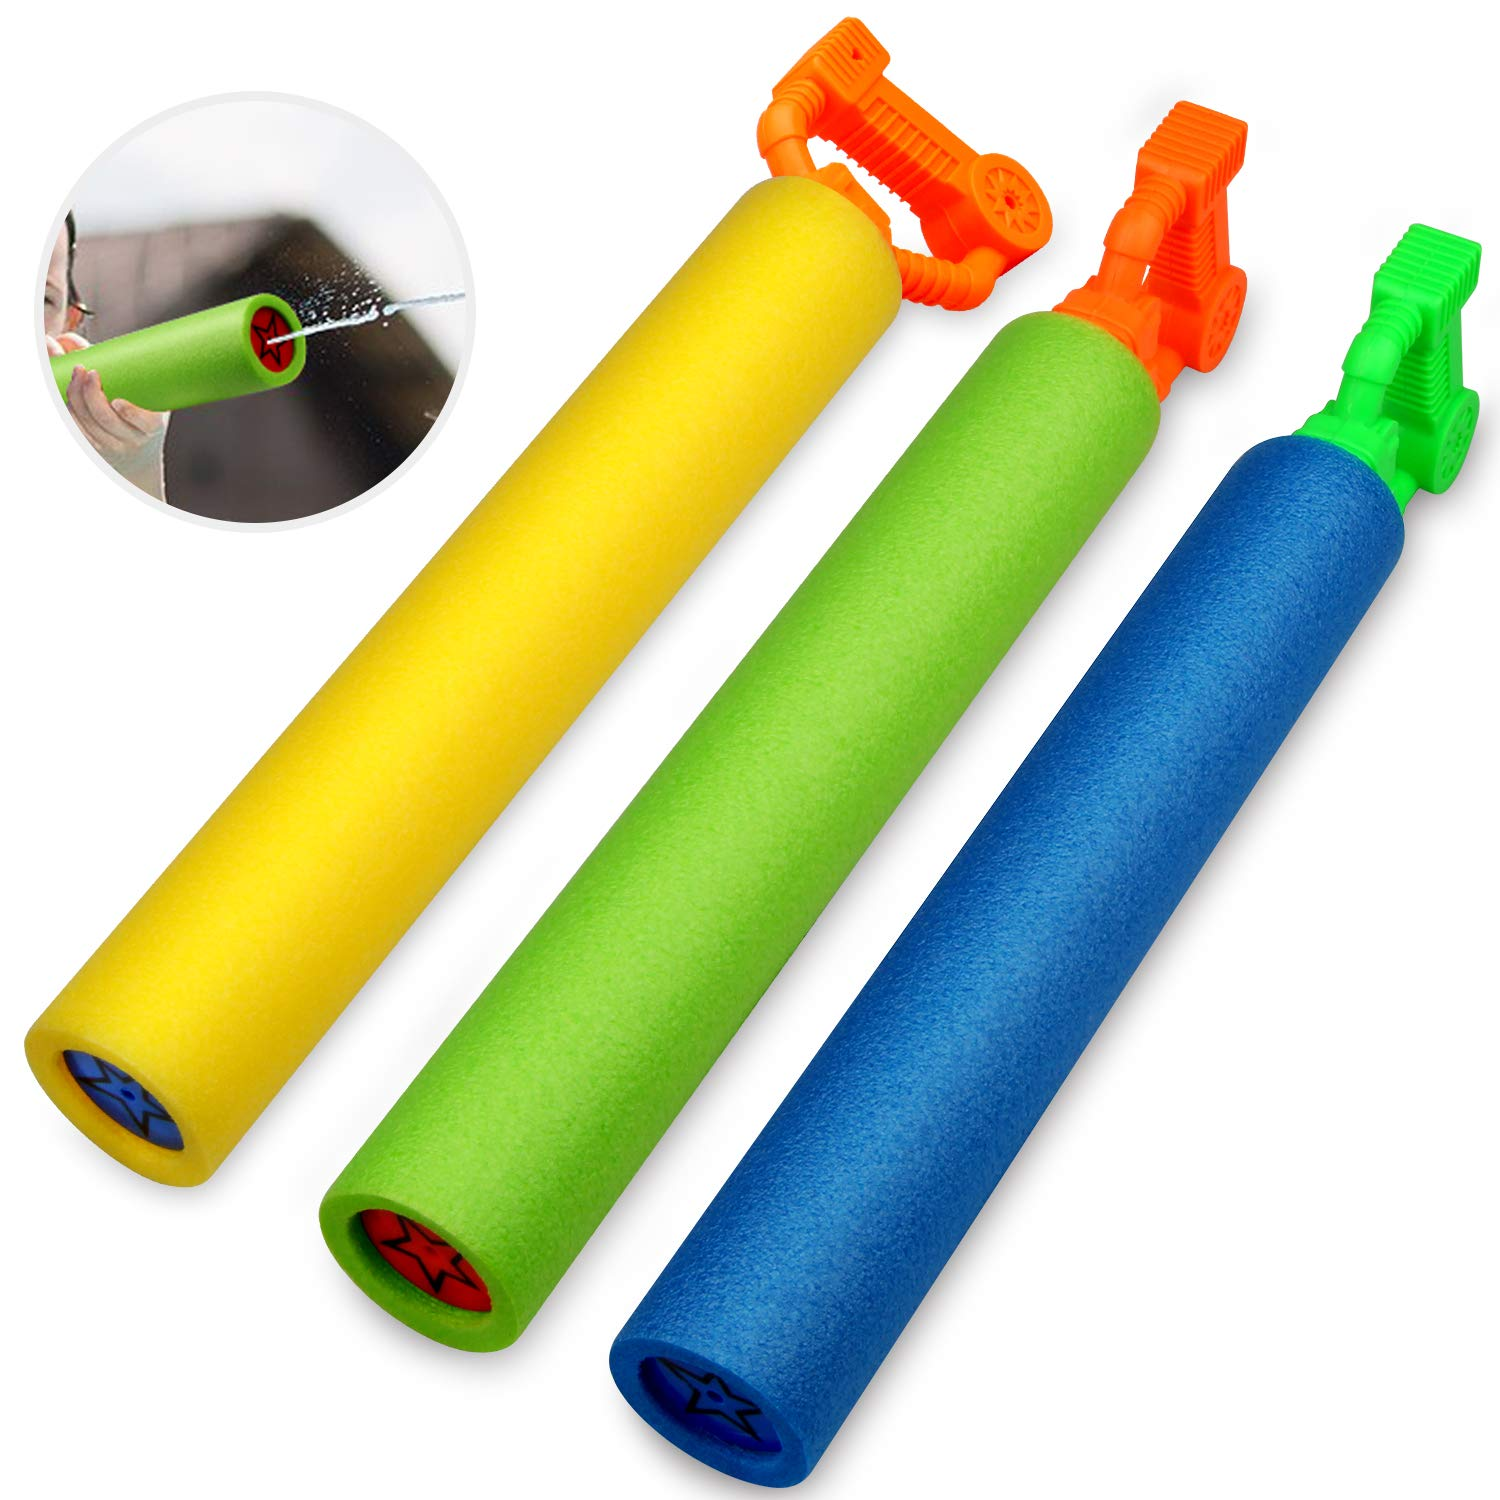 Betheaces Water Guns for Kids, 3Pack Super Soaker Foam Water Blaster Shooter Summer Fun Outdoor Swimming Pool Games Toys for Boys Girls Adults by Betheaces